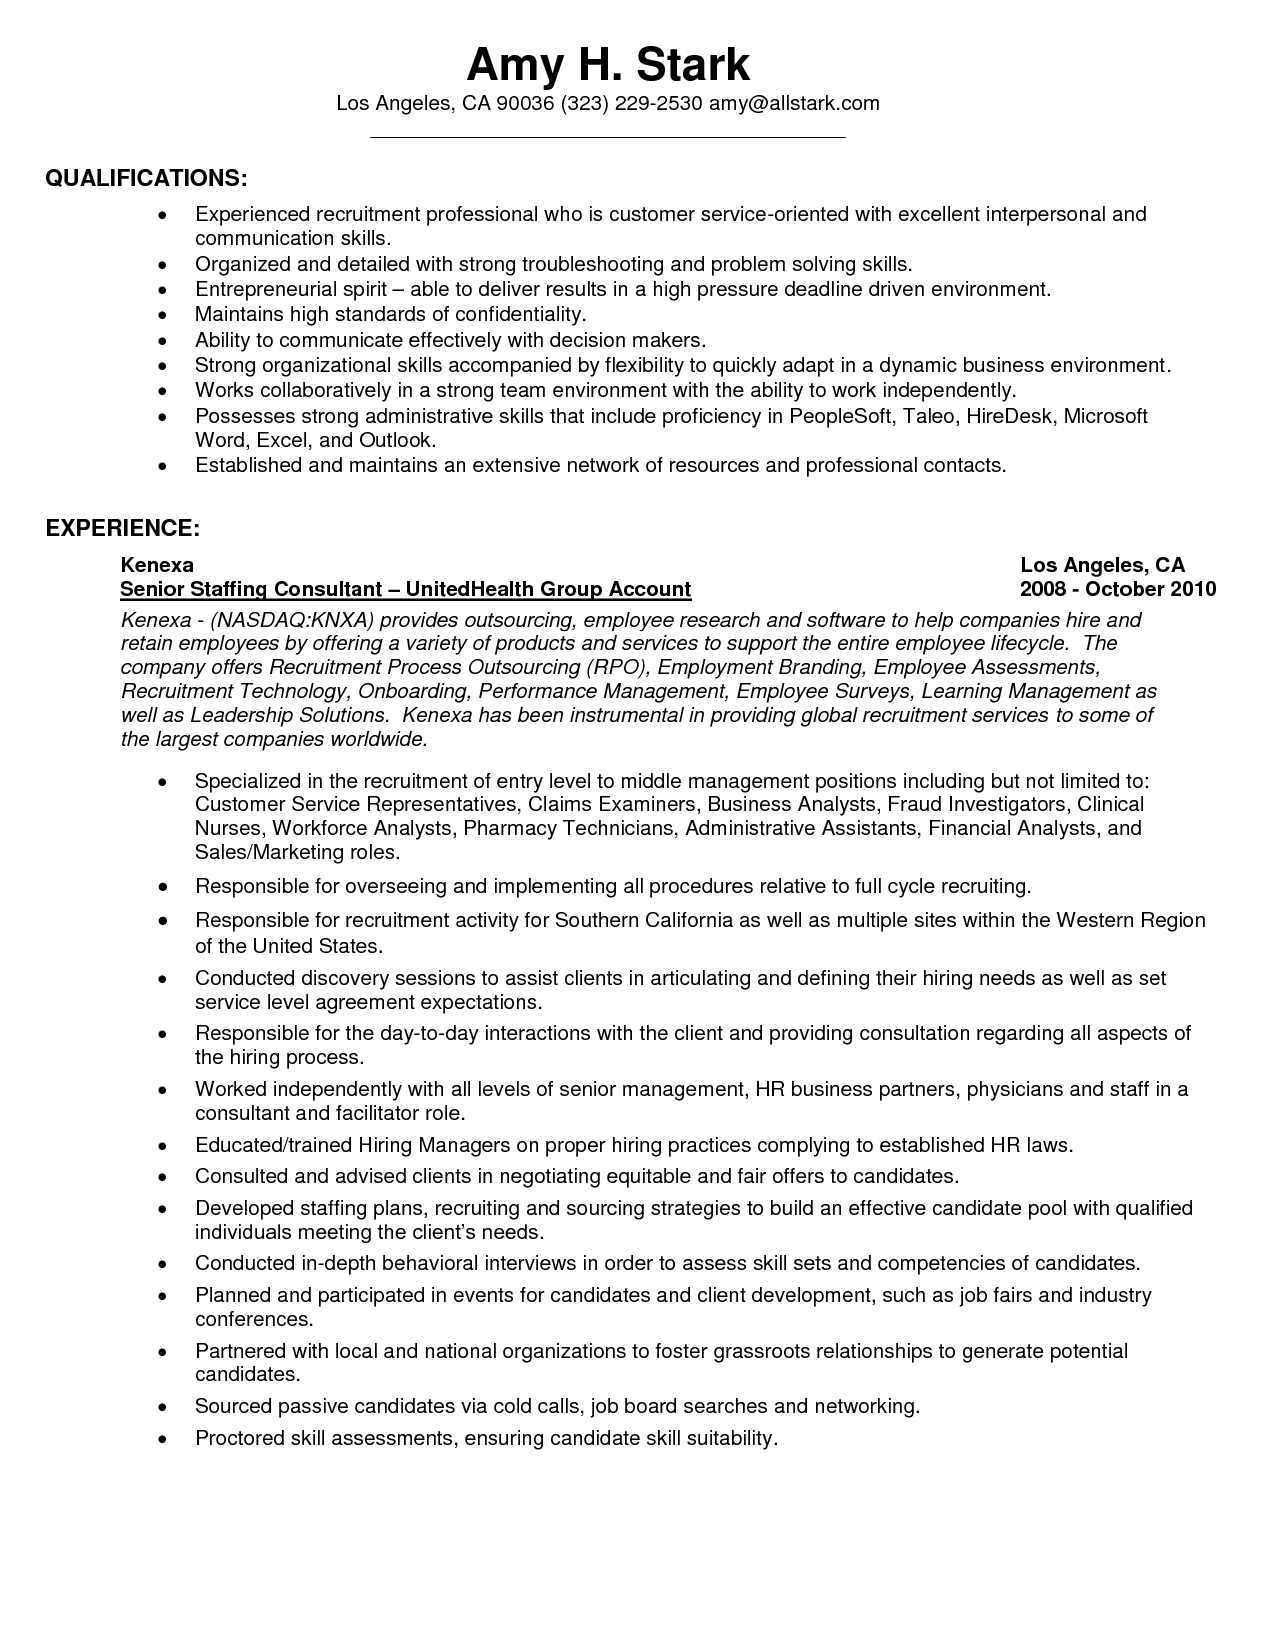 Skills For Job Resume Excellent Customer Service Skills Resume  Sample Resume Center